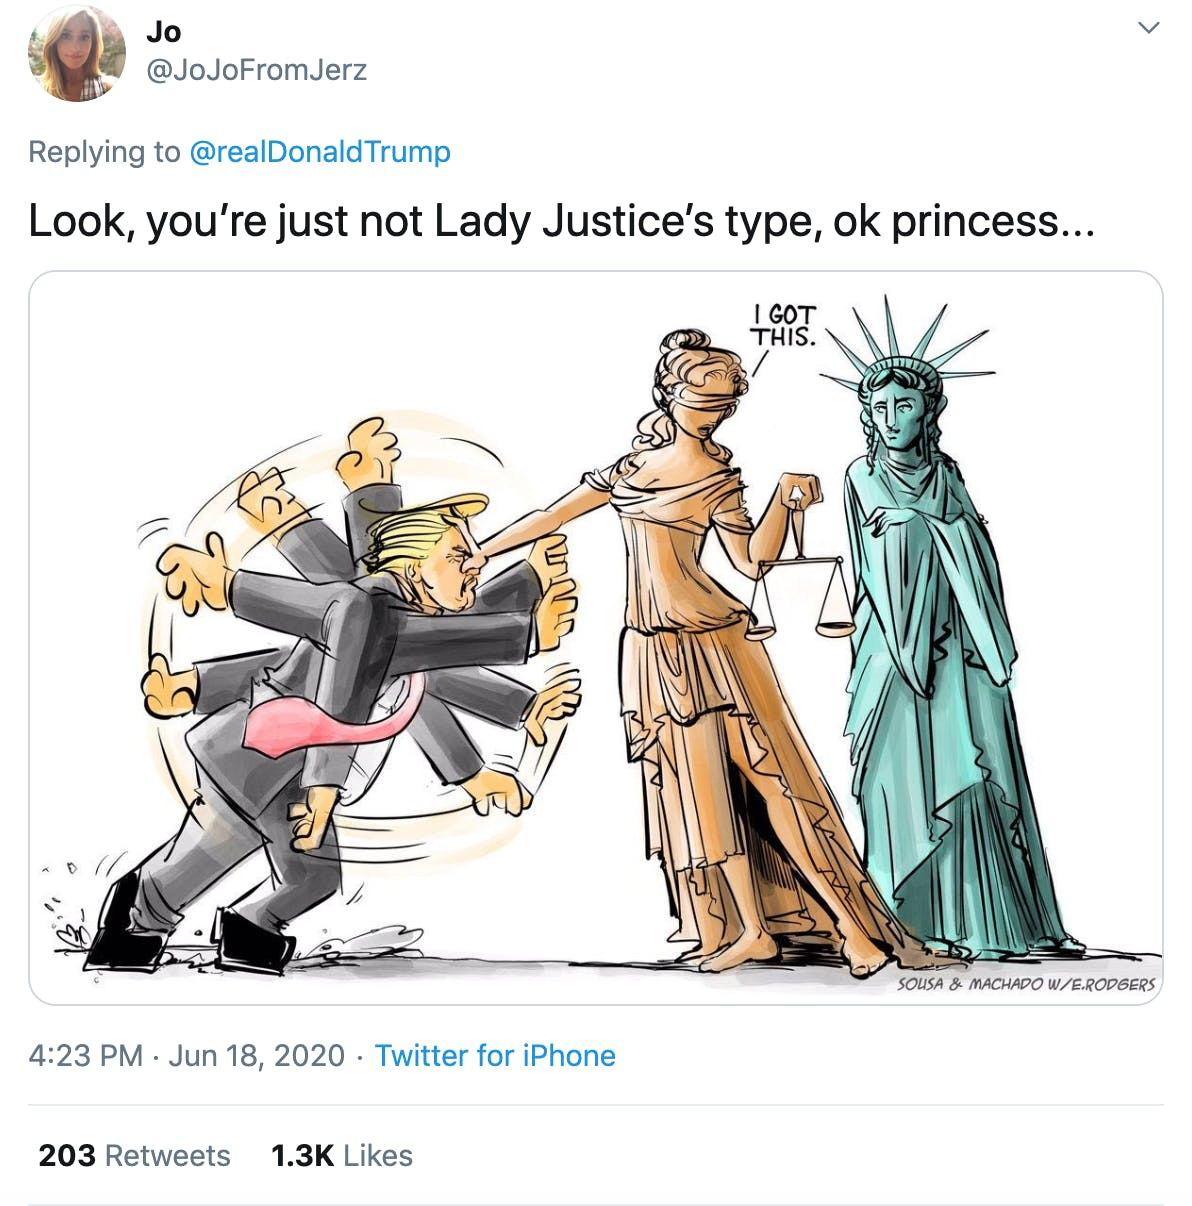 """""""Look, you're just not Lady Justice's type, ok princess..."""" cartoon of Lady Justice holding Trump off by his forehead and saying """"I got this"""" while the Statue of Liberty stands behind her"""